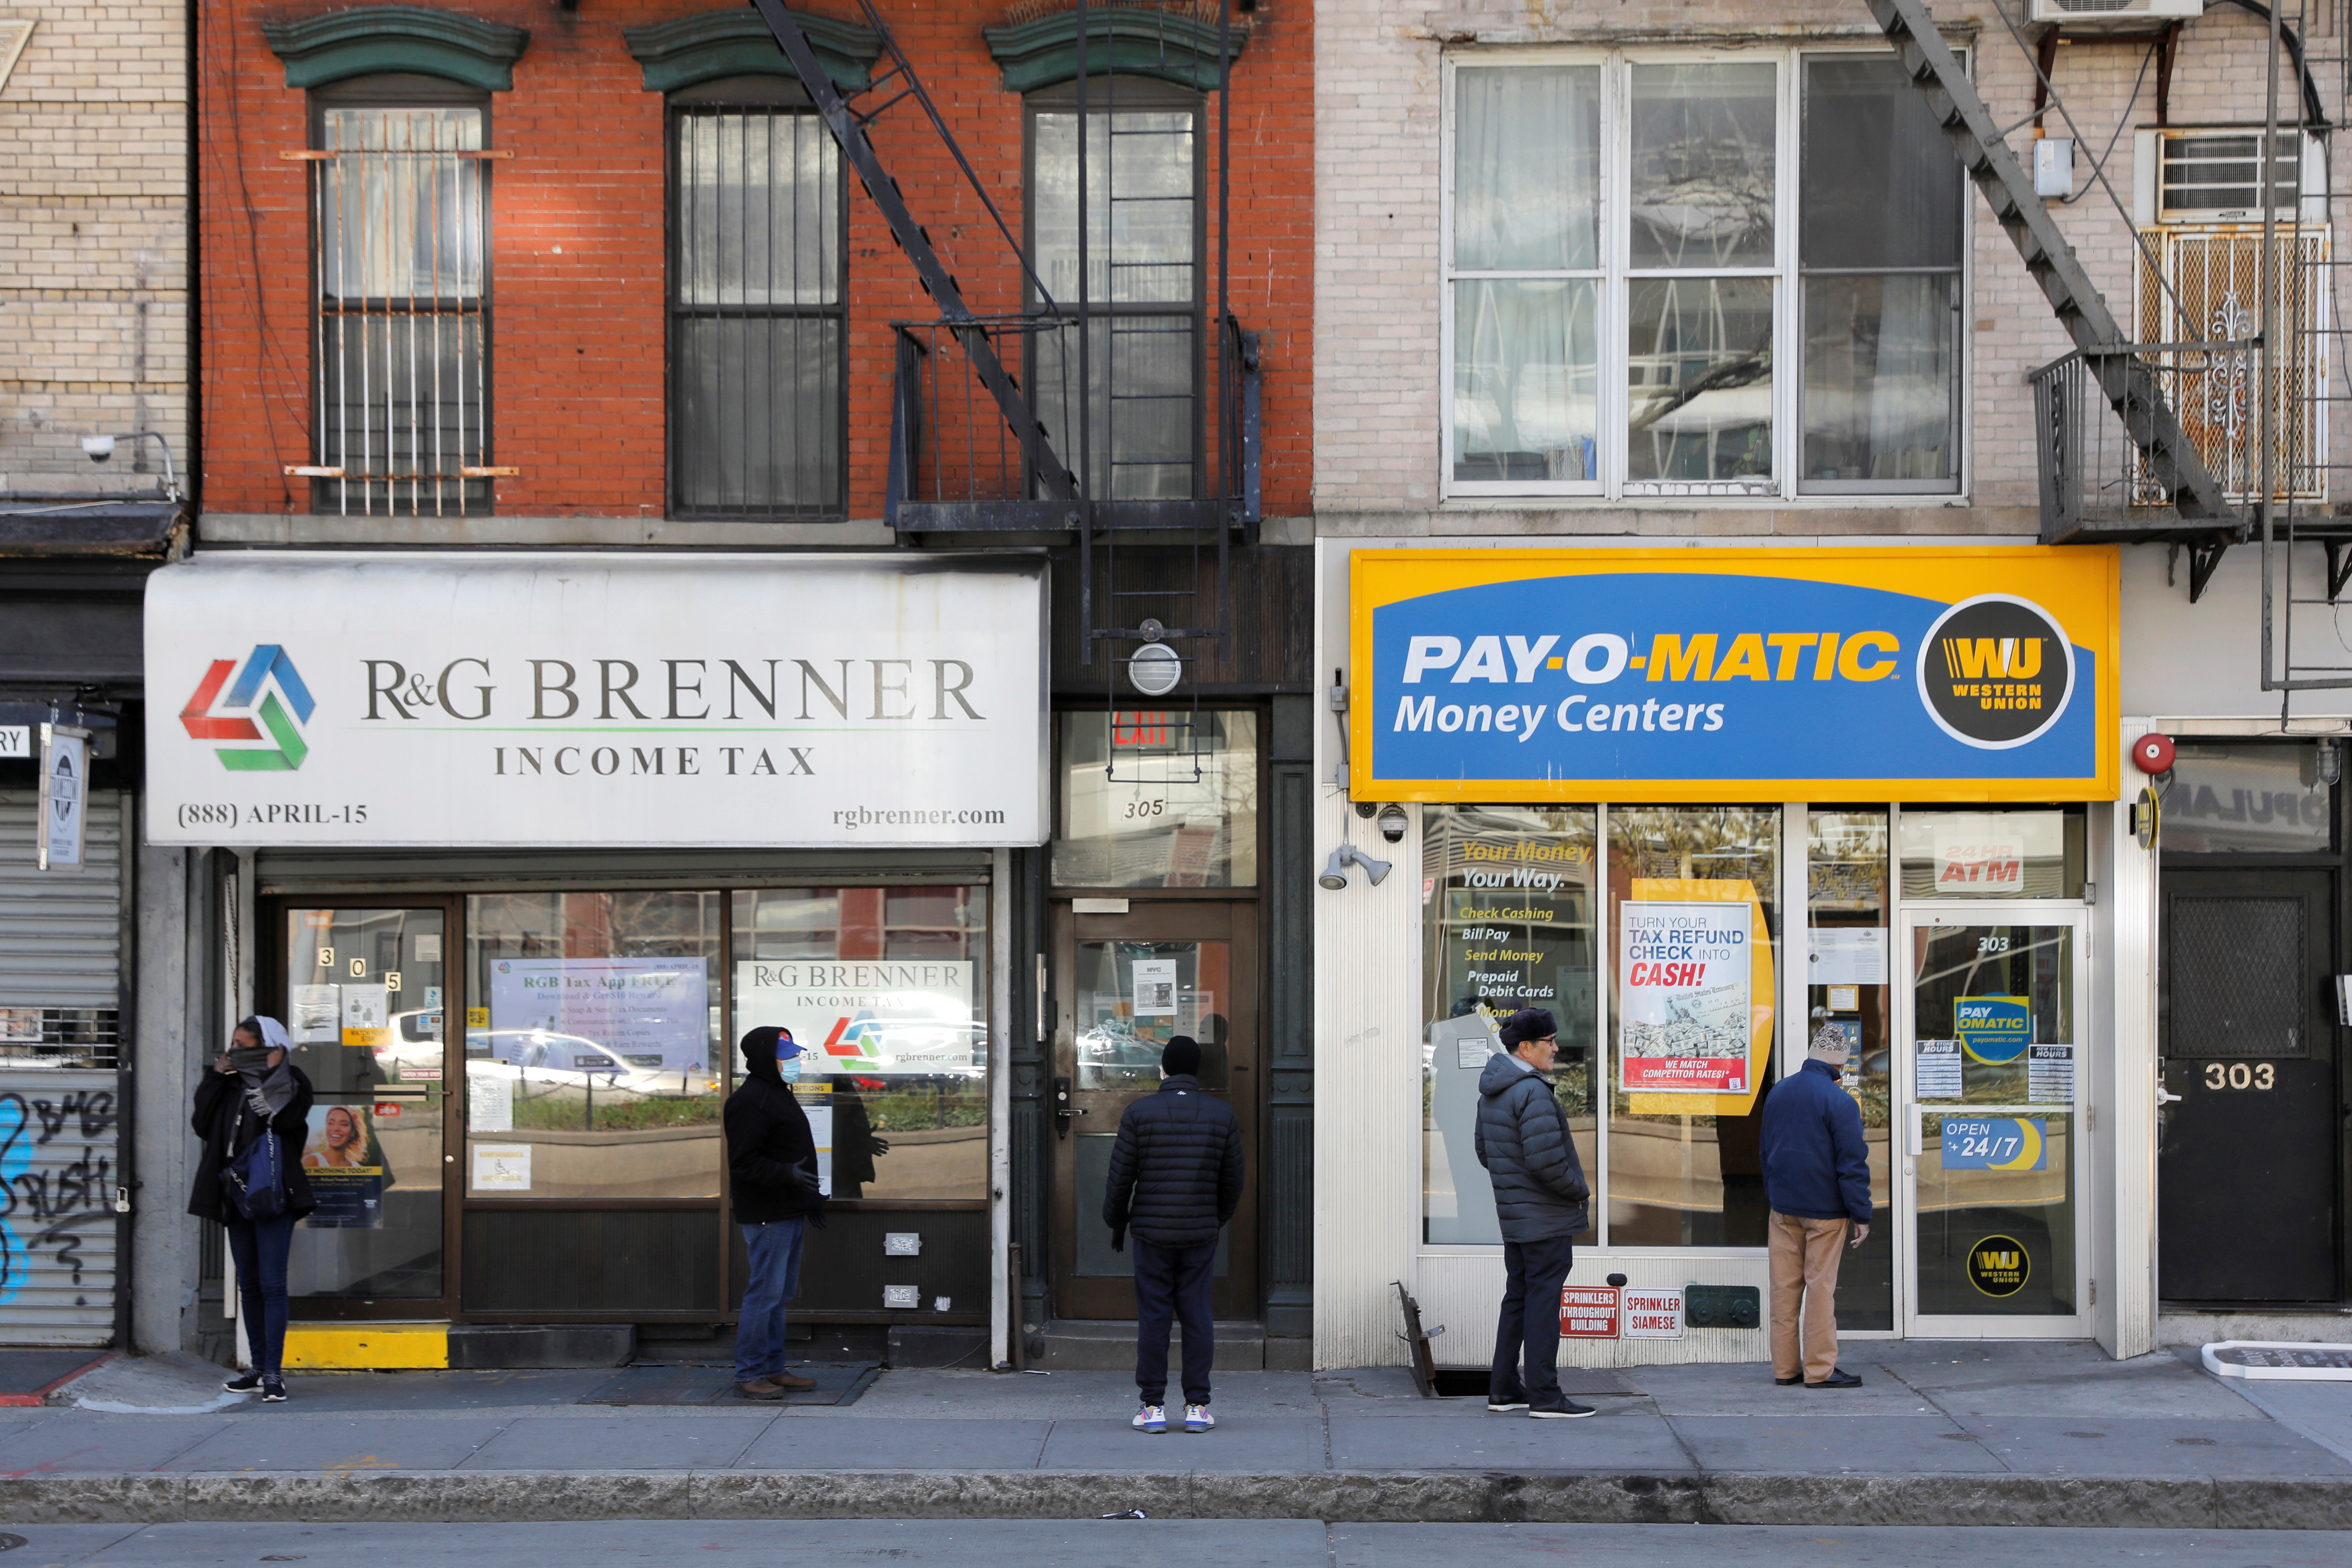 People queue to enter Payomatic, a business that offers check cashing, as unemployment claim figures were released, during the coronavirus disease (COVID-19) outbreak in Manhattan, New York City, New York, U.S., April 2, 2020. REUTERS/Andrew Kelly - RC2IWF9MM1UY